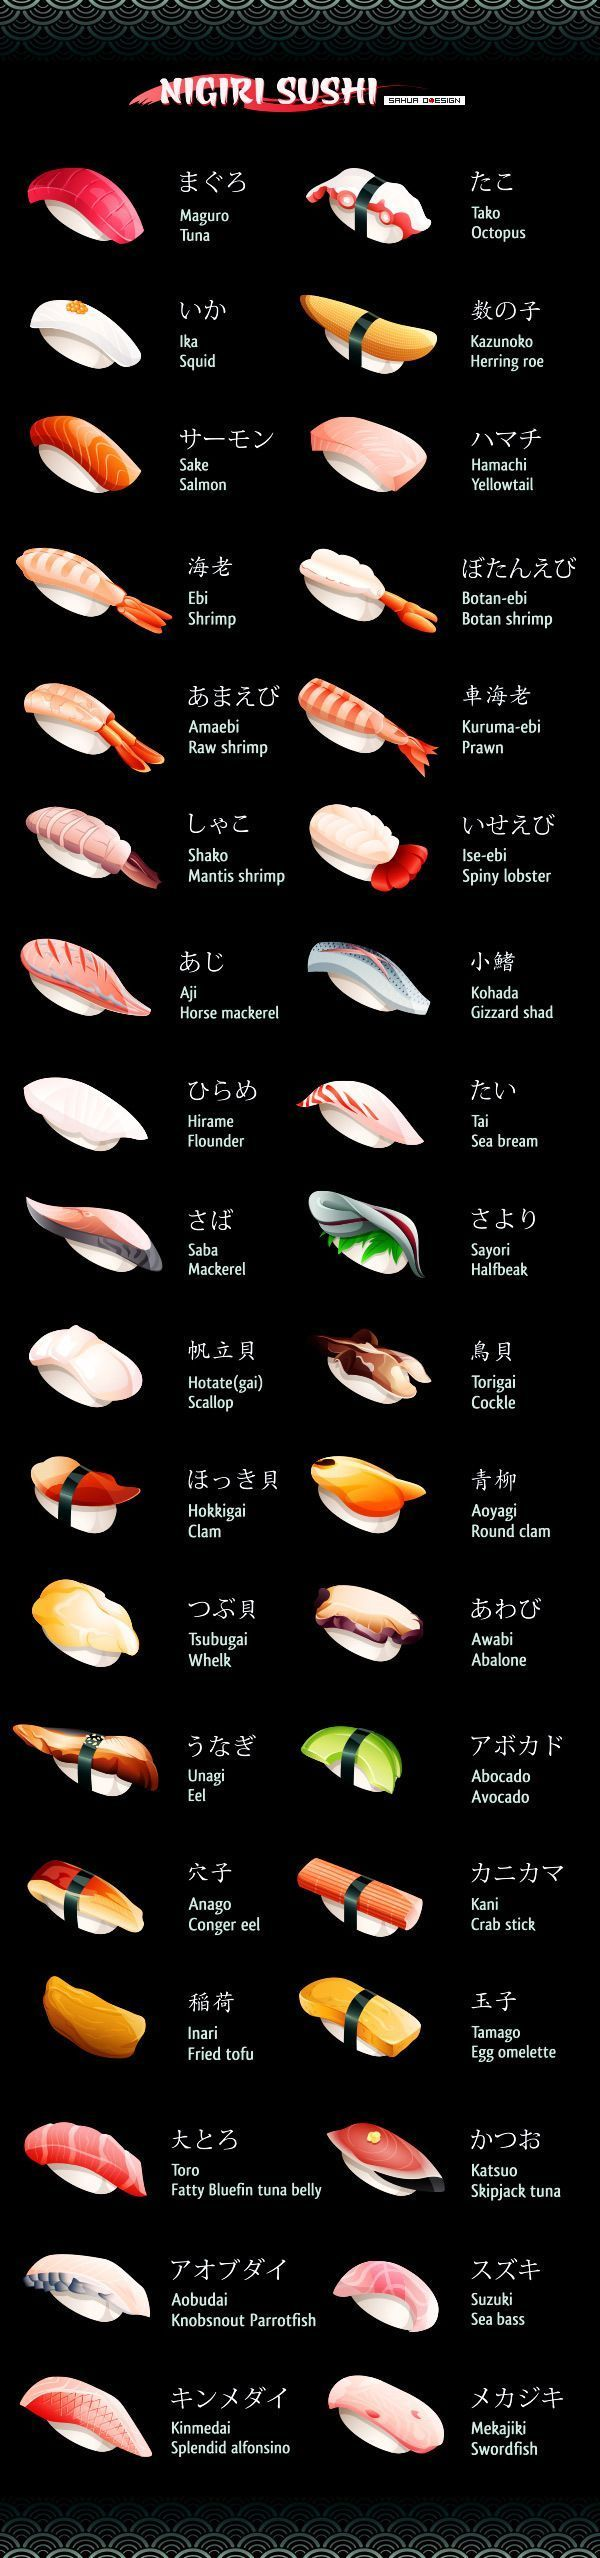 "Sushi - this isn't entirely accurate, just to warn people: although the romaji for salmon say ""sake"", the Japanese word for salmon, the katakana says ""sãmon"" 